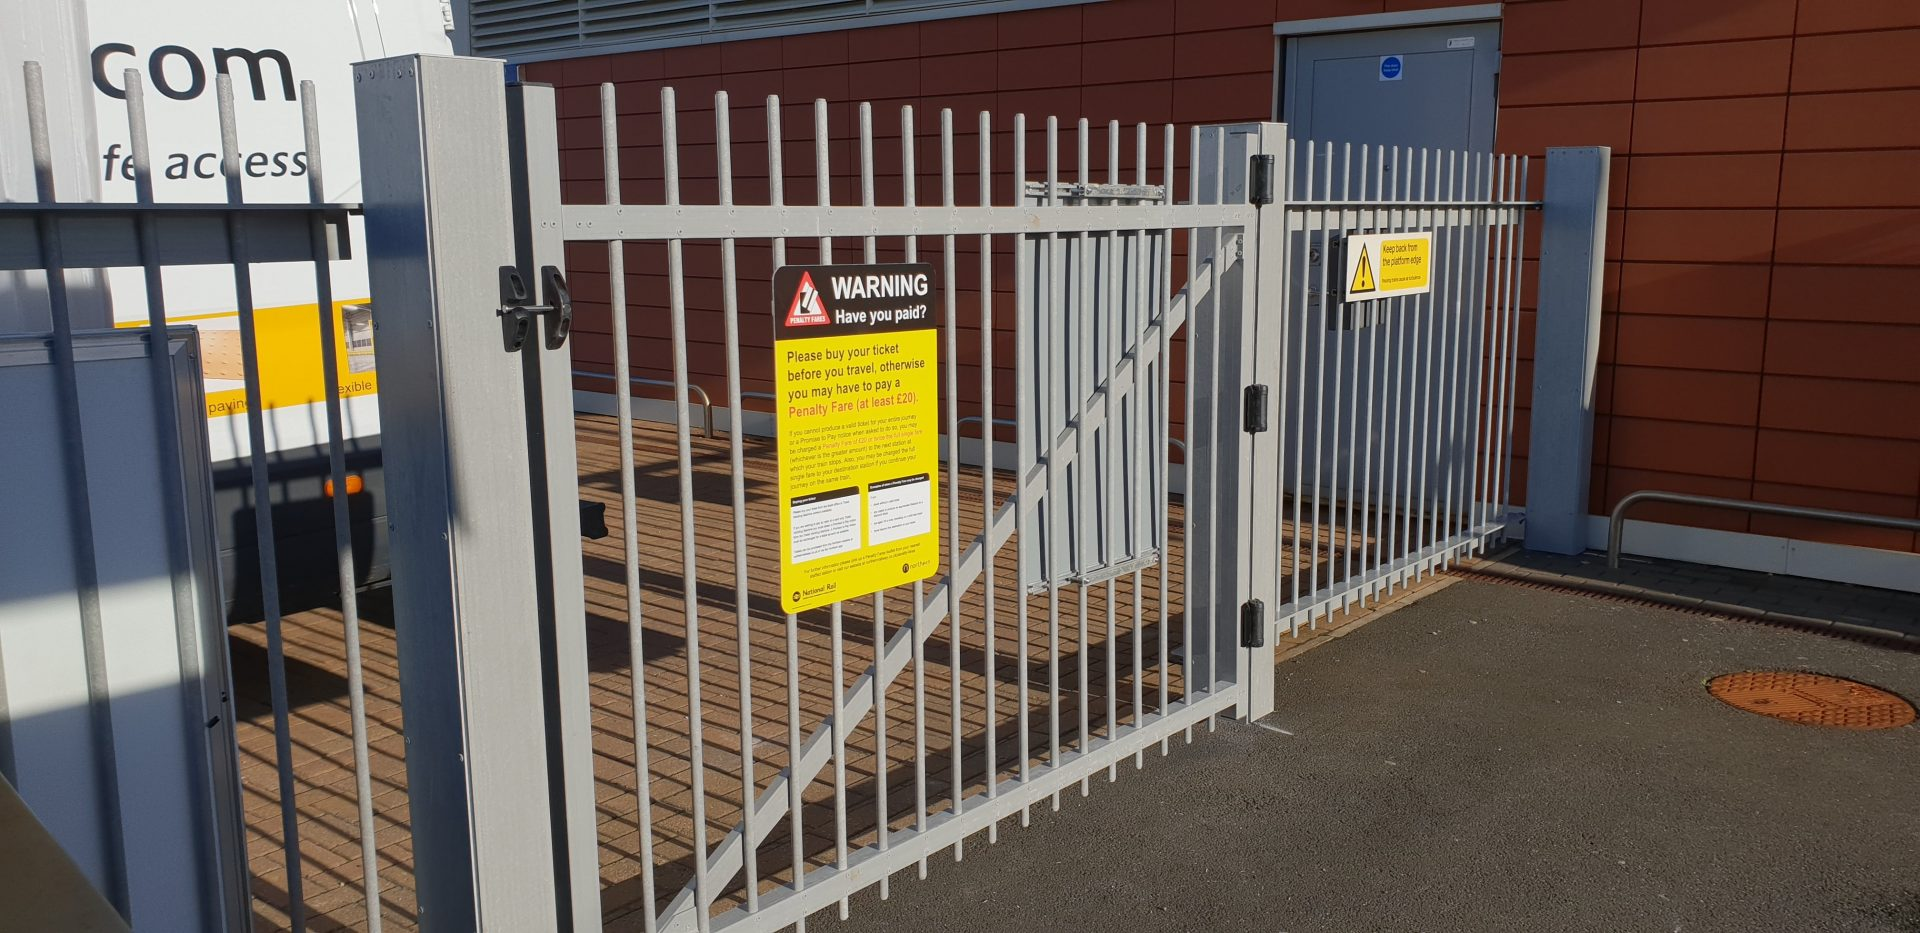 Evergrip Glassfibre commercial fencing & gate electrically non-conductive